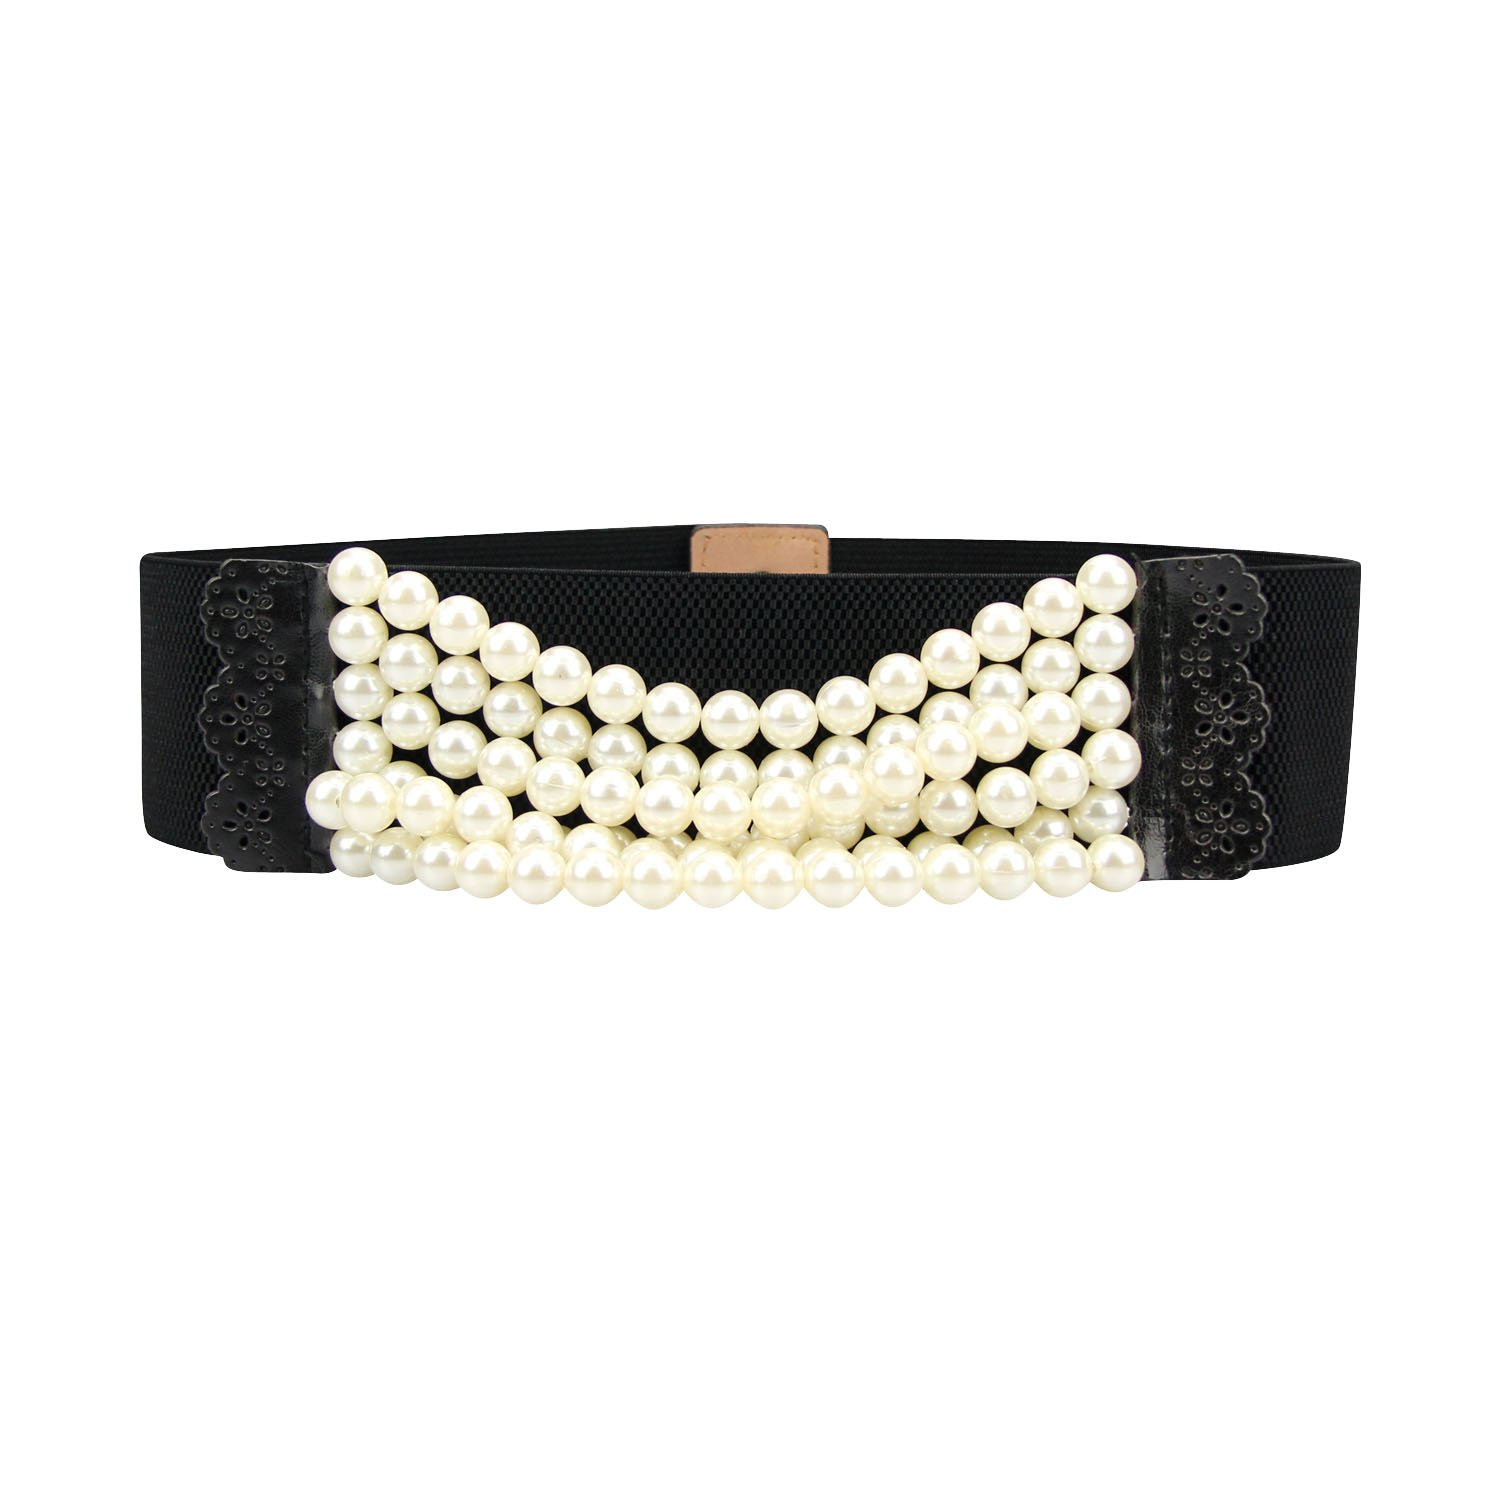 H:oter Lady Genuine Pearl Ornament Elastic Belt Features Lace Detail - Black